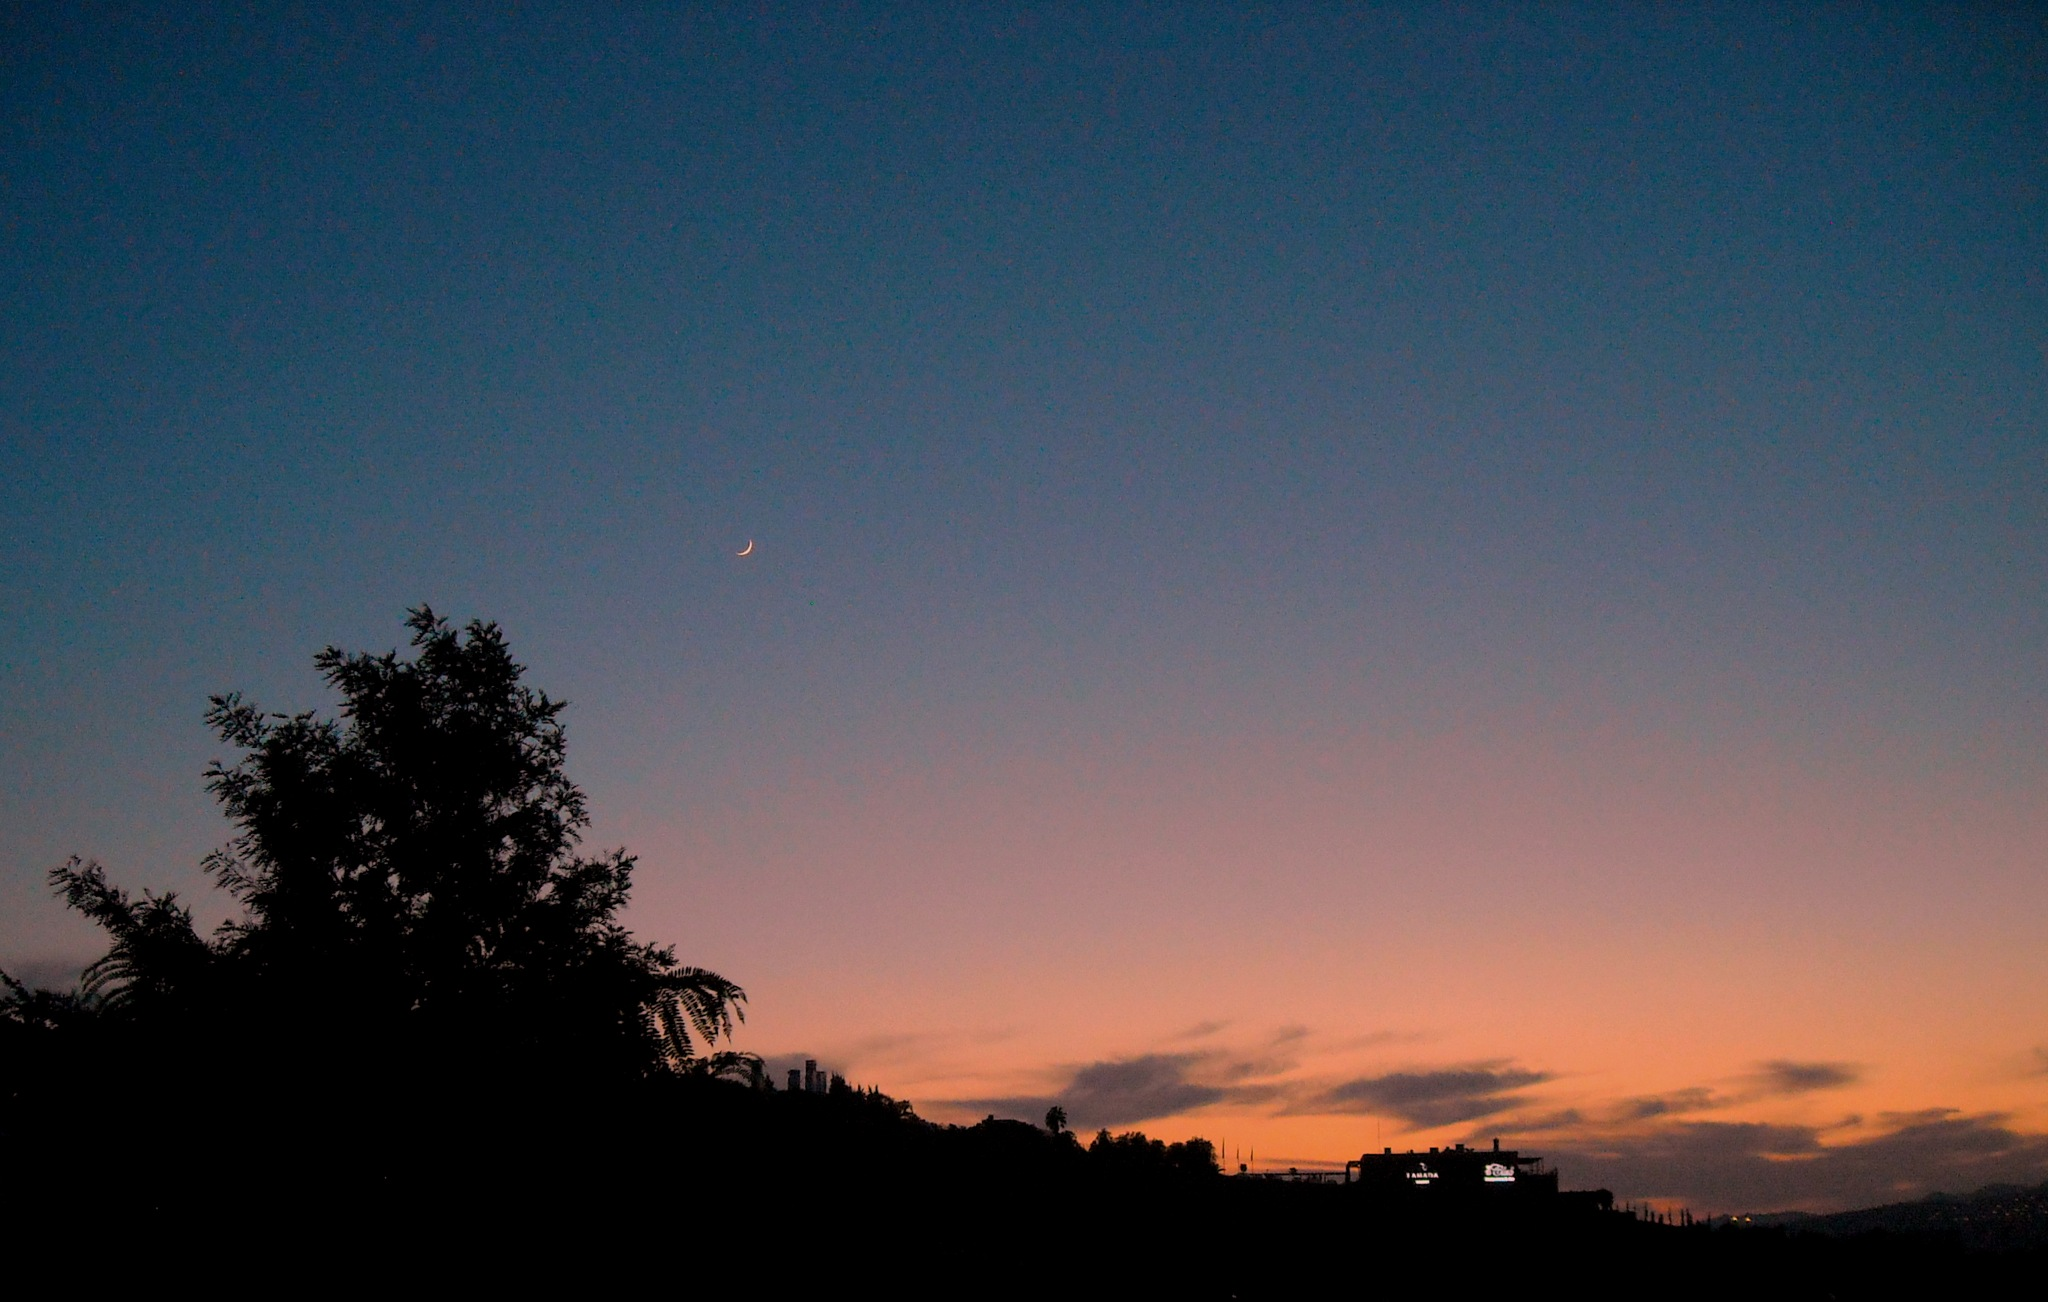 NEW MOON AT SUNSET, FULL SCREEN by Akin Saner